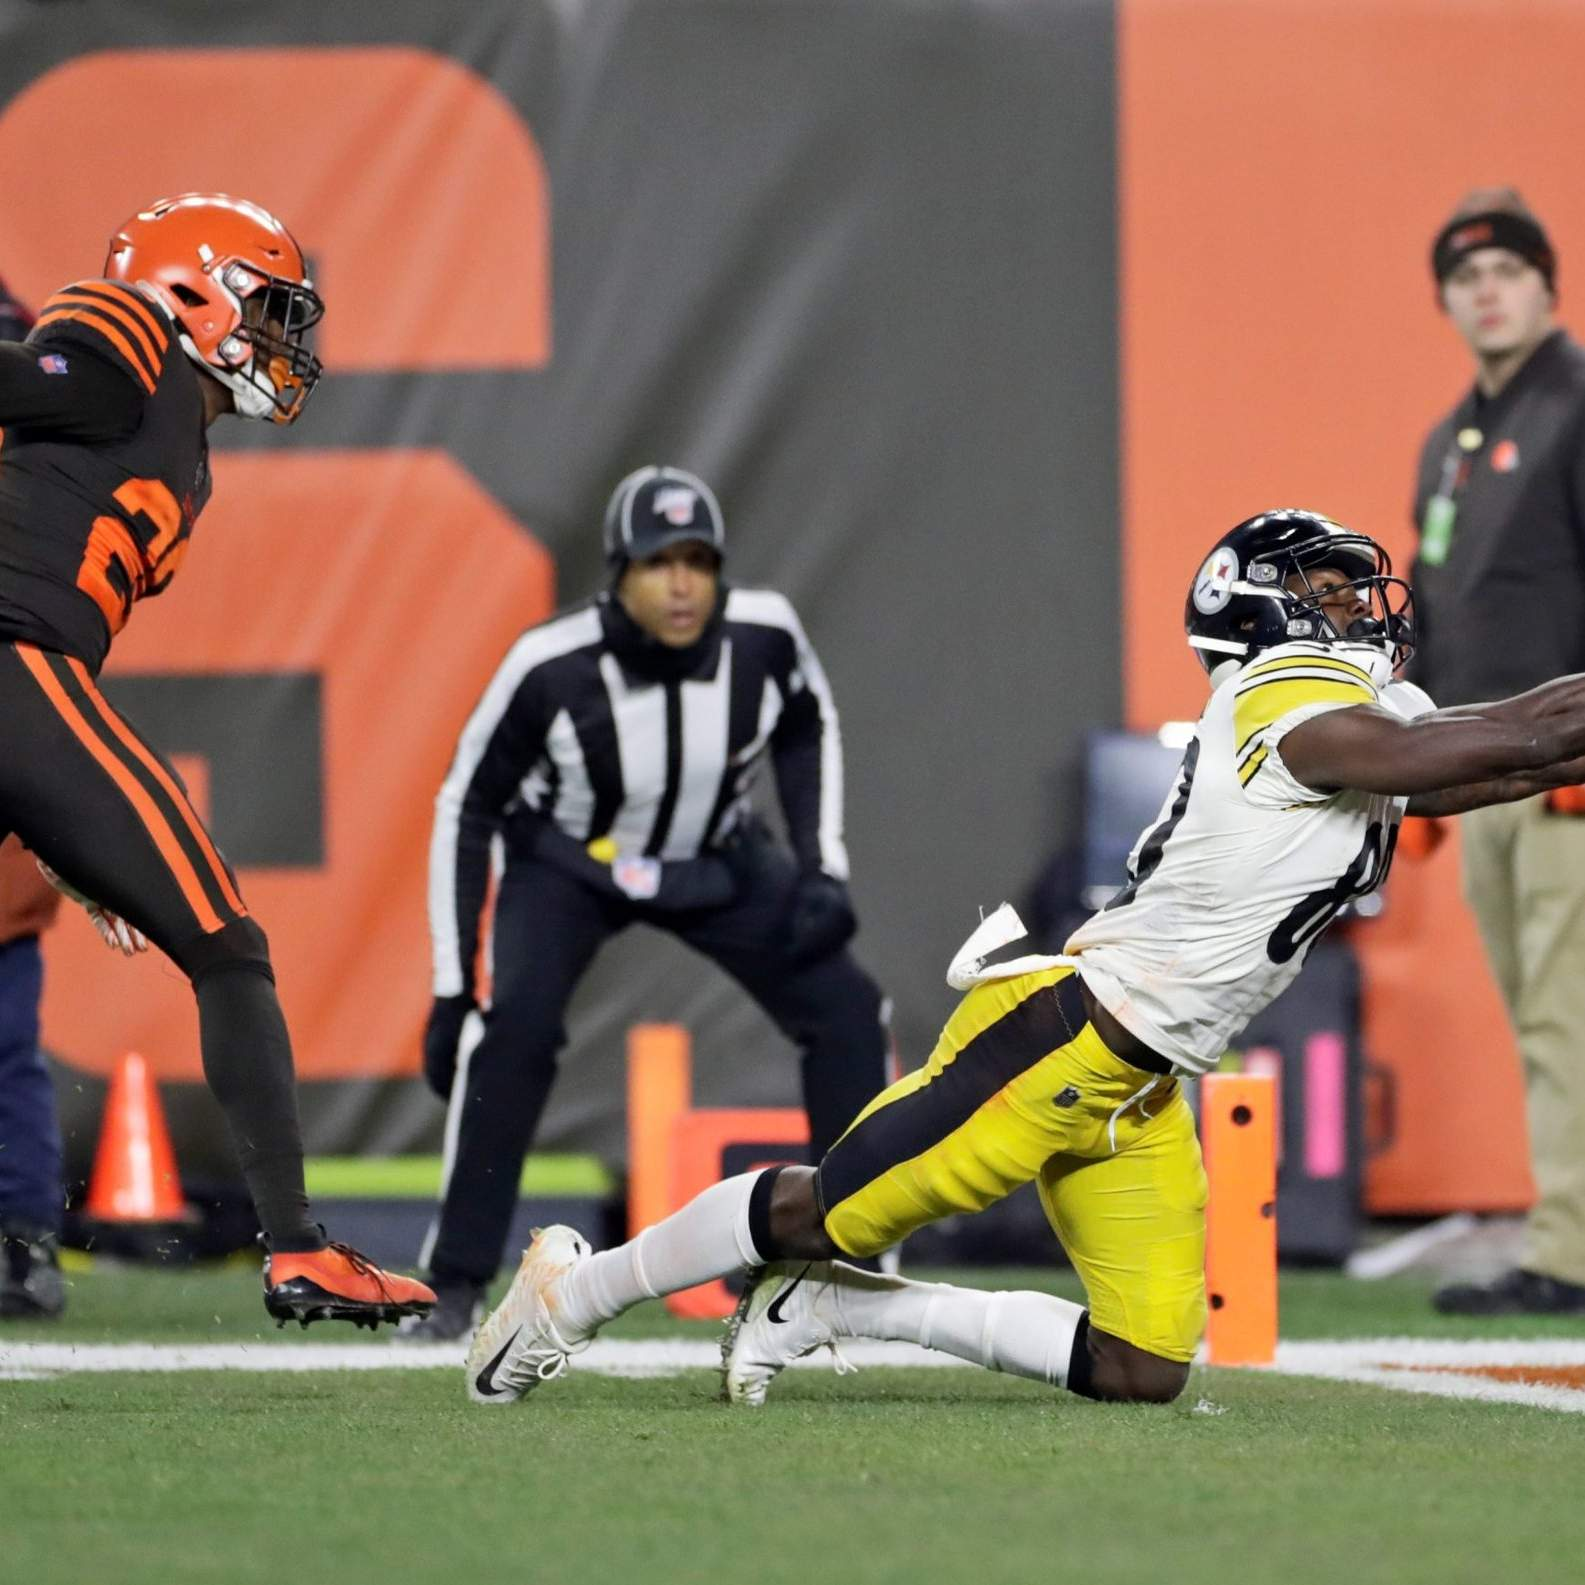 Browns Top Steelers Win Marred By Brawl